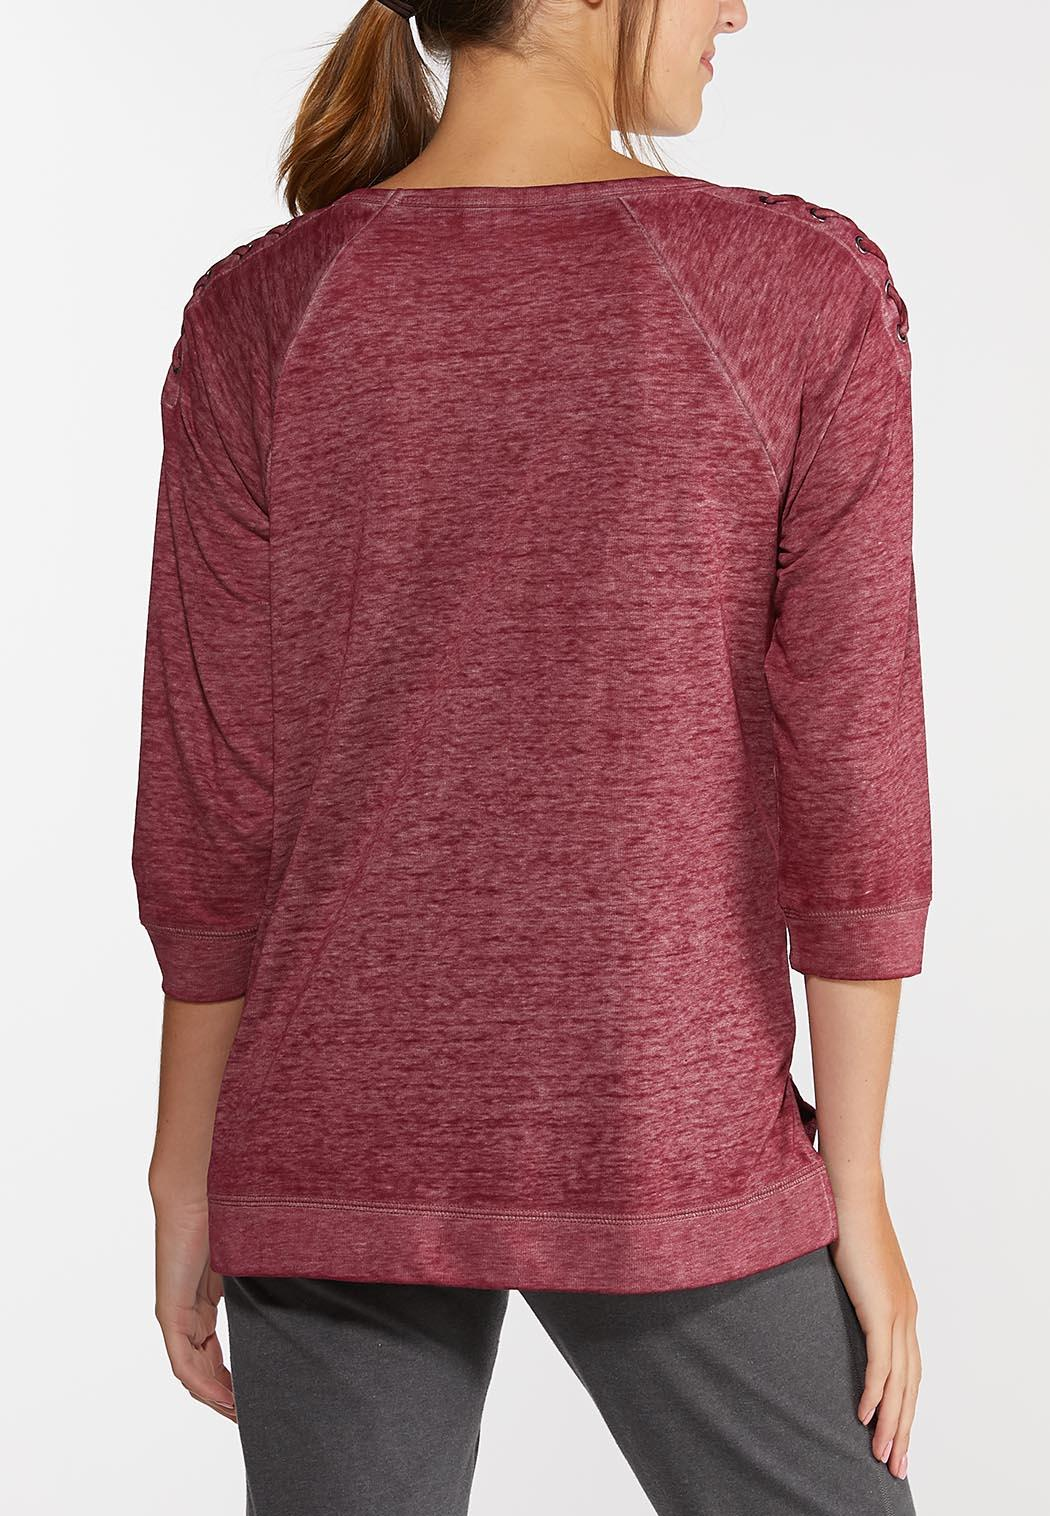 Lace Up Wine Athleisure Top (Item #44316985)